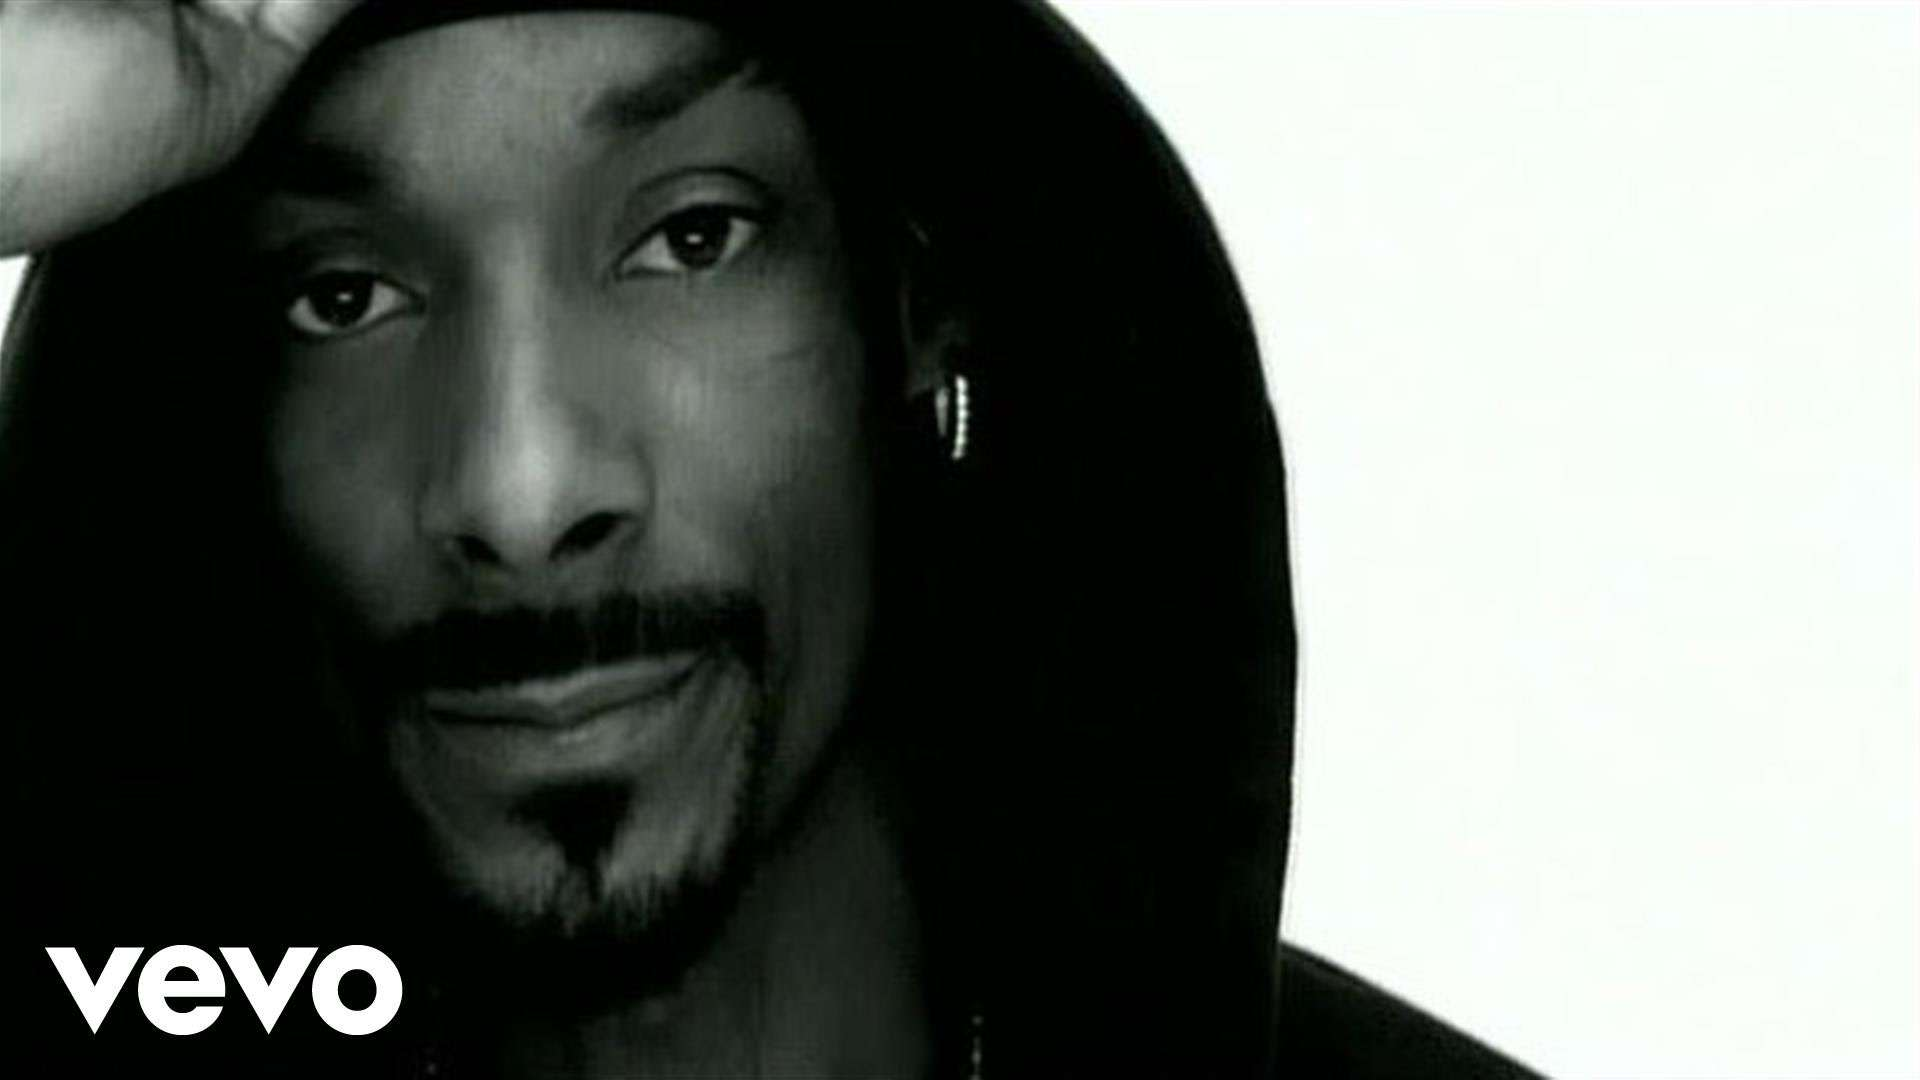 Snoop Dogg - Drop It Like It's Hot ft. Pharrell Williams - YouTube